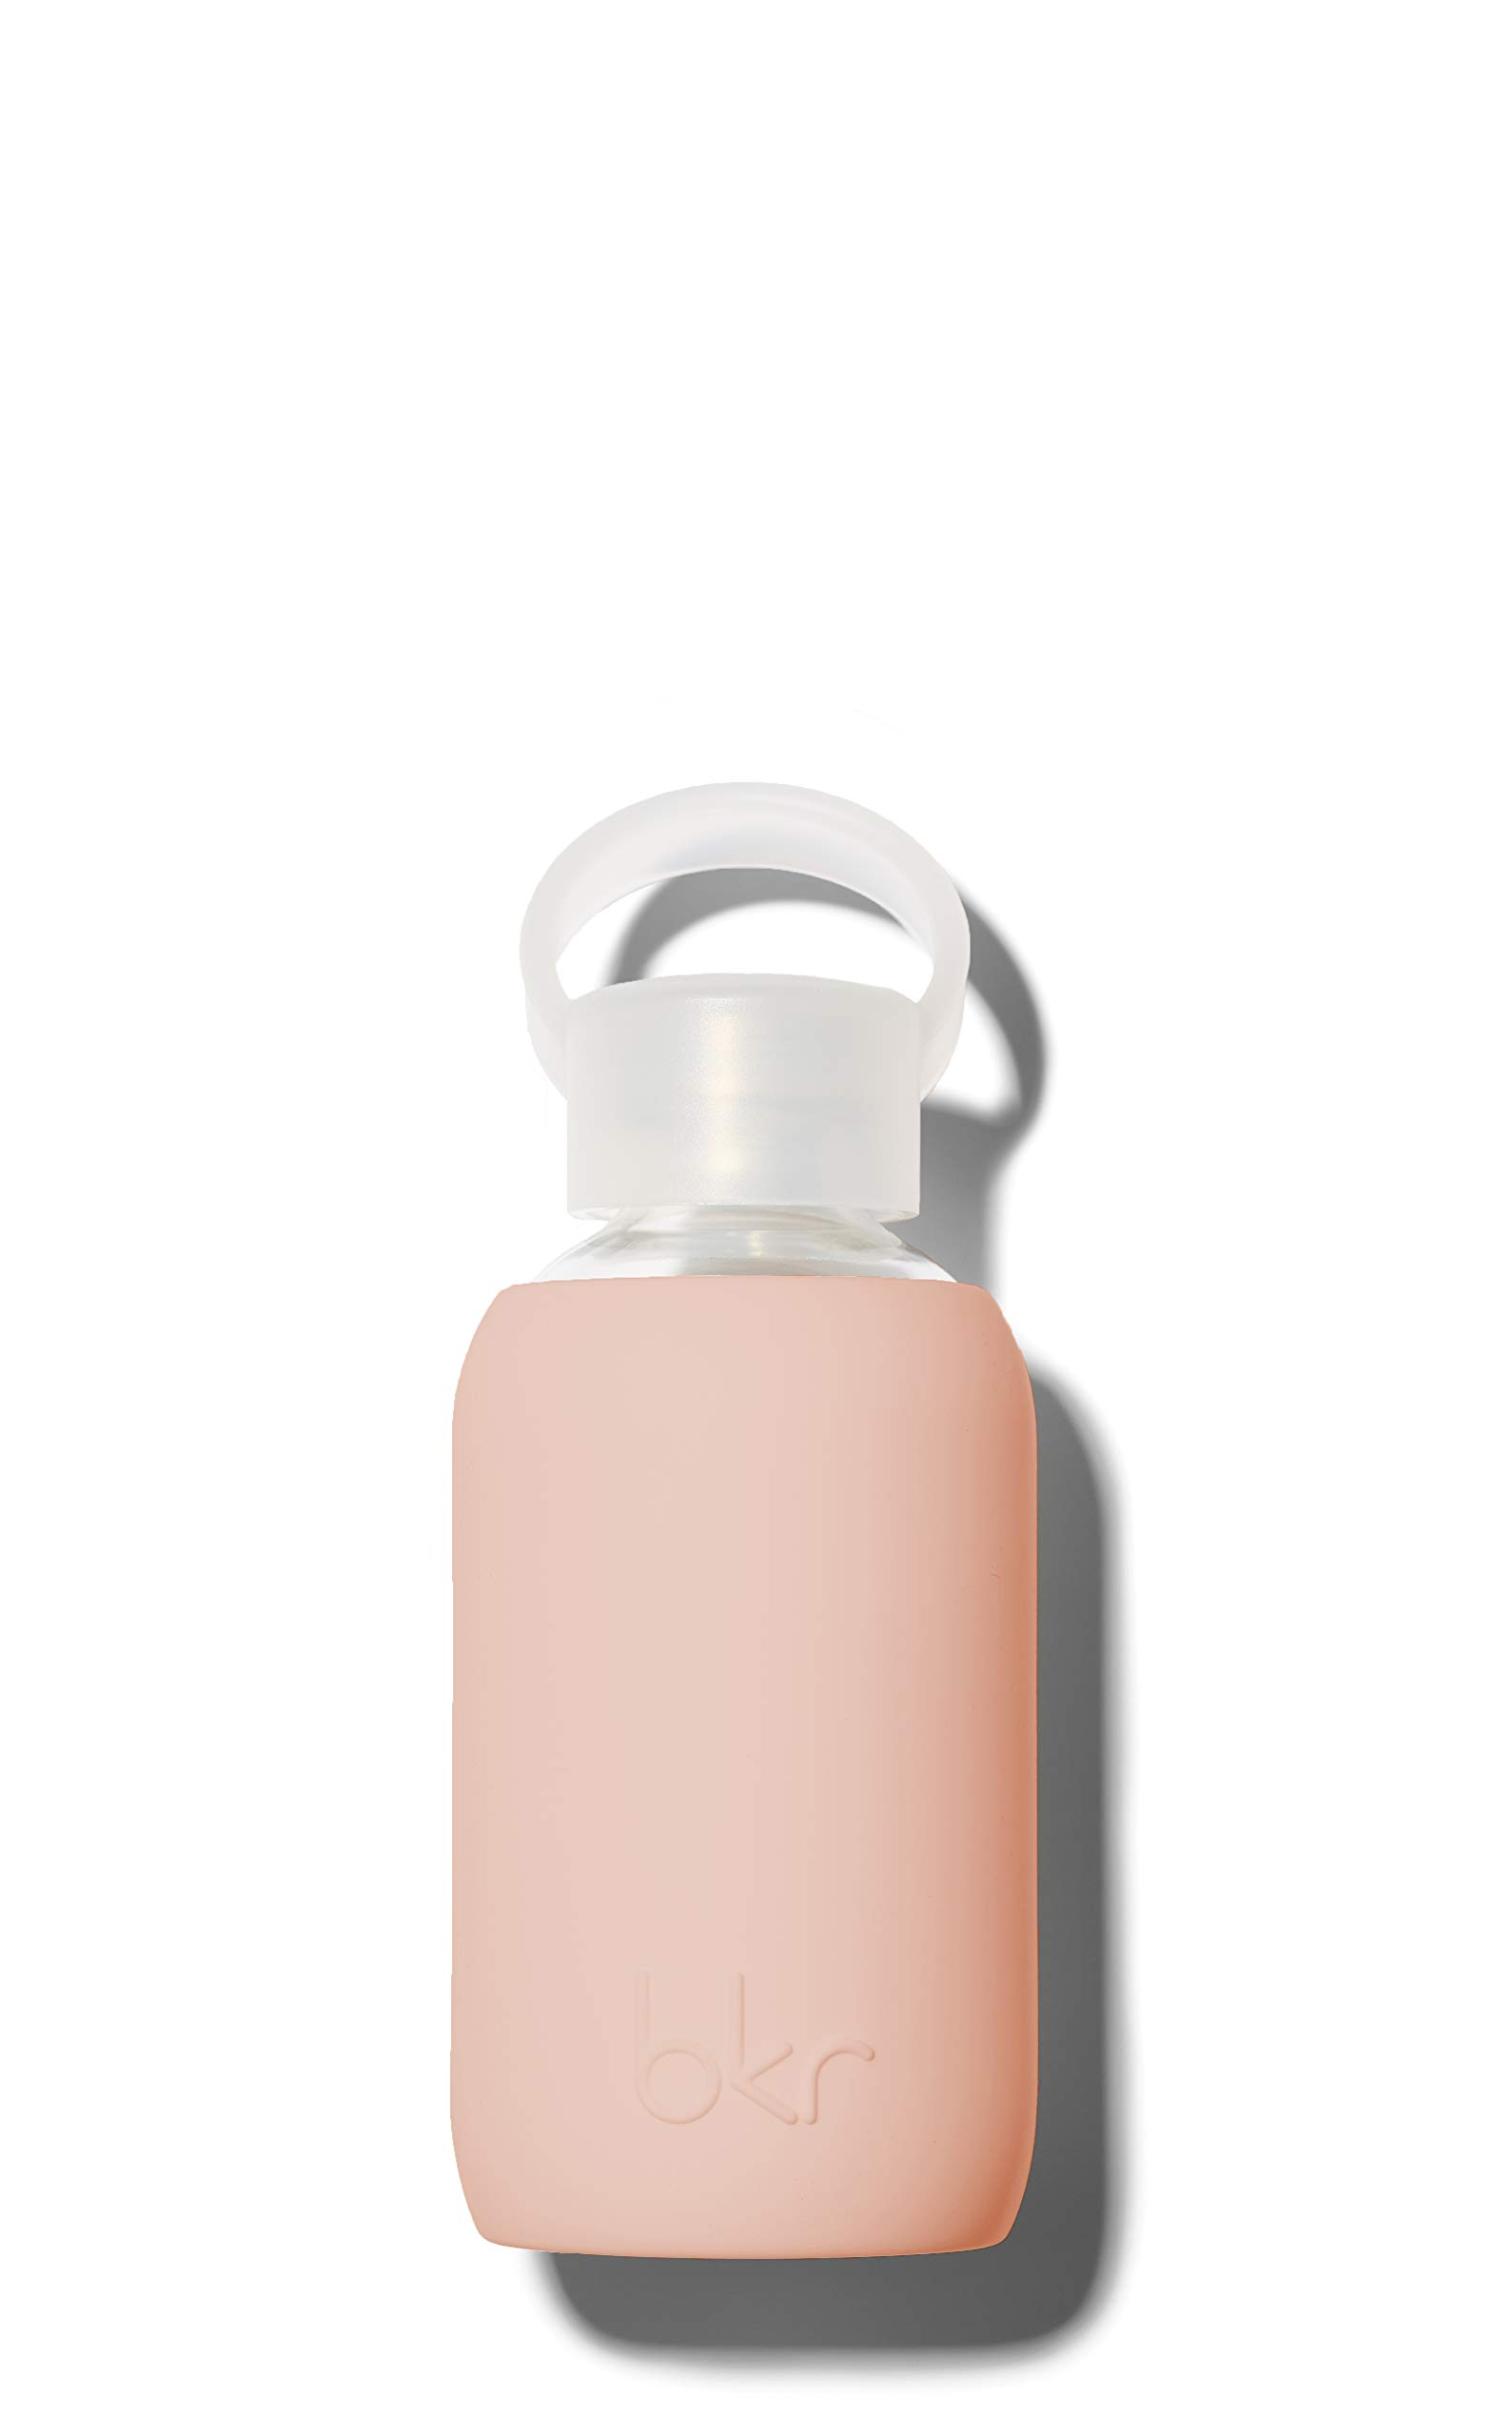 bkr Naked Glass Water Bottle with Smooth Silicone Sleeve for Travel, Narrow Mouth, BPA-Free & Dishwasher Safe, Opaque Light Chocolate Milk Nude, 8 oz / 250 mL